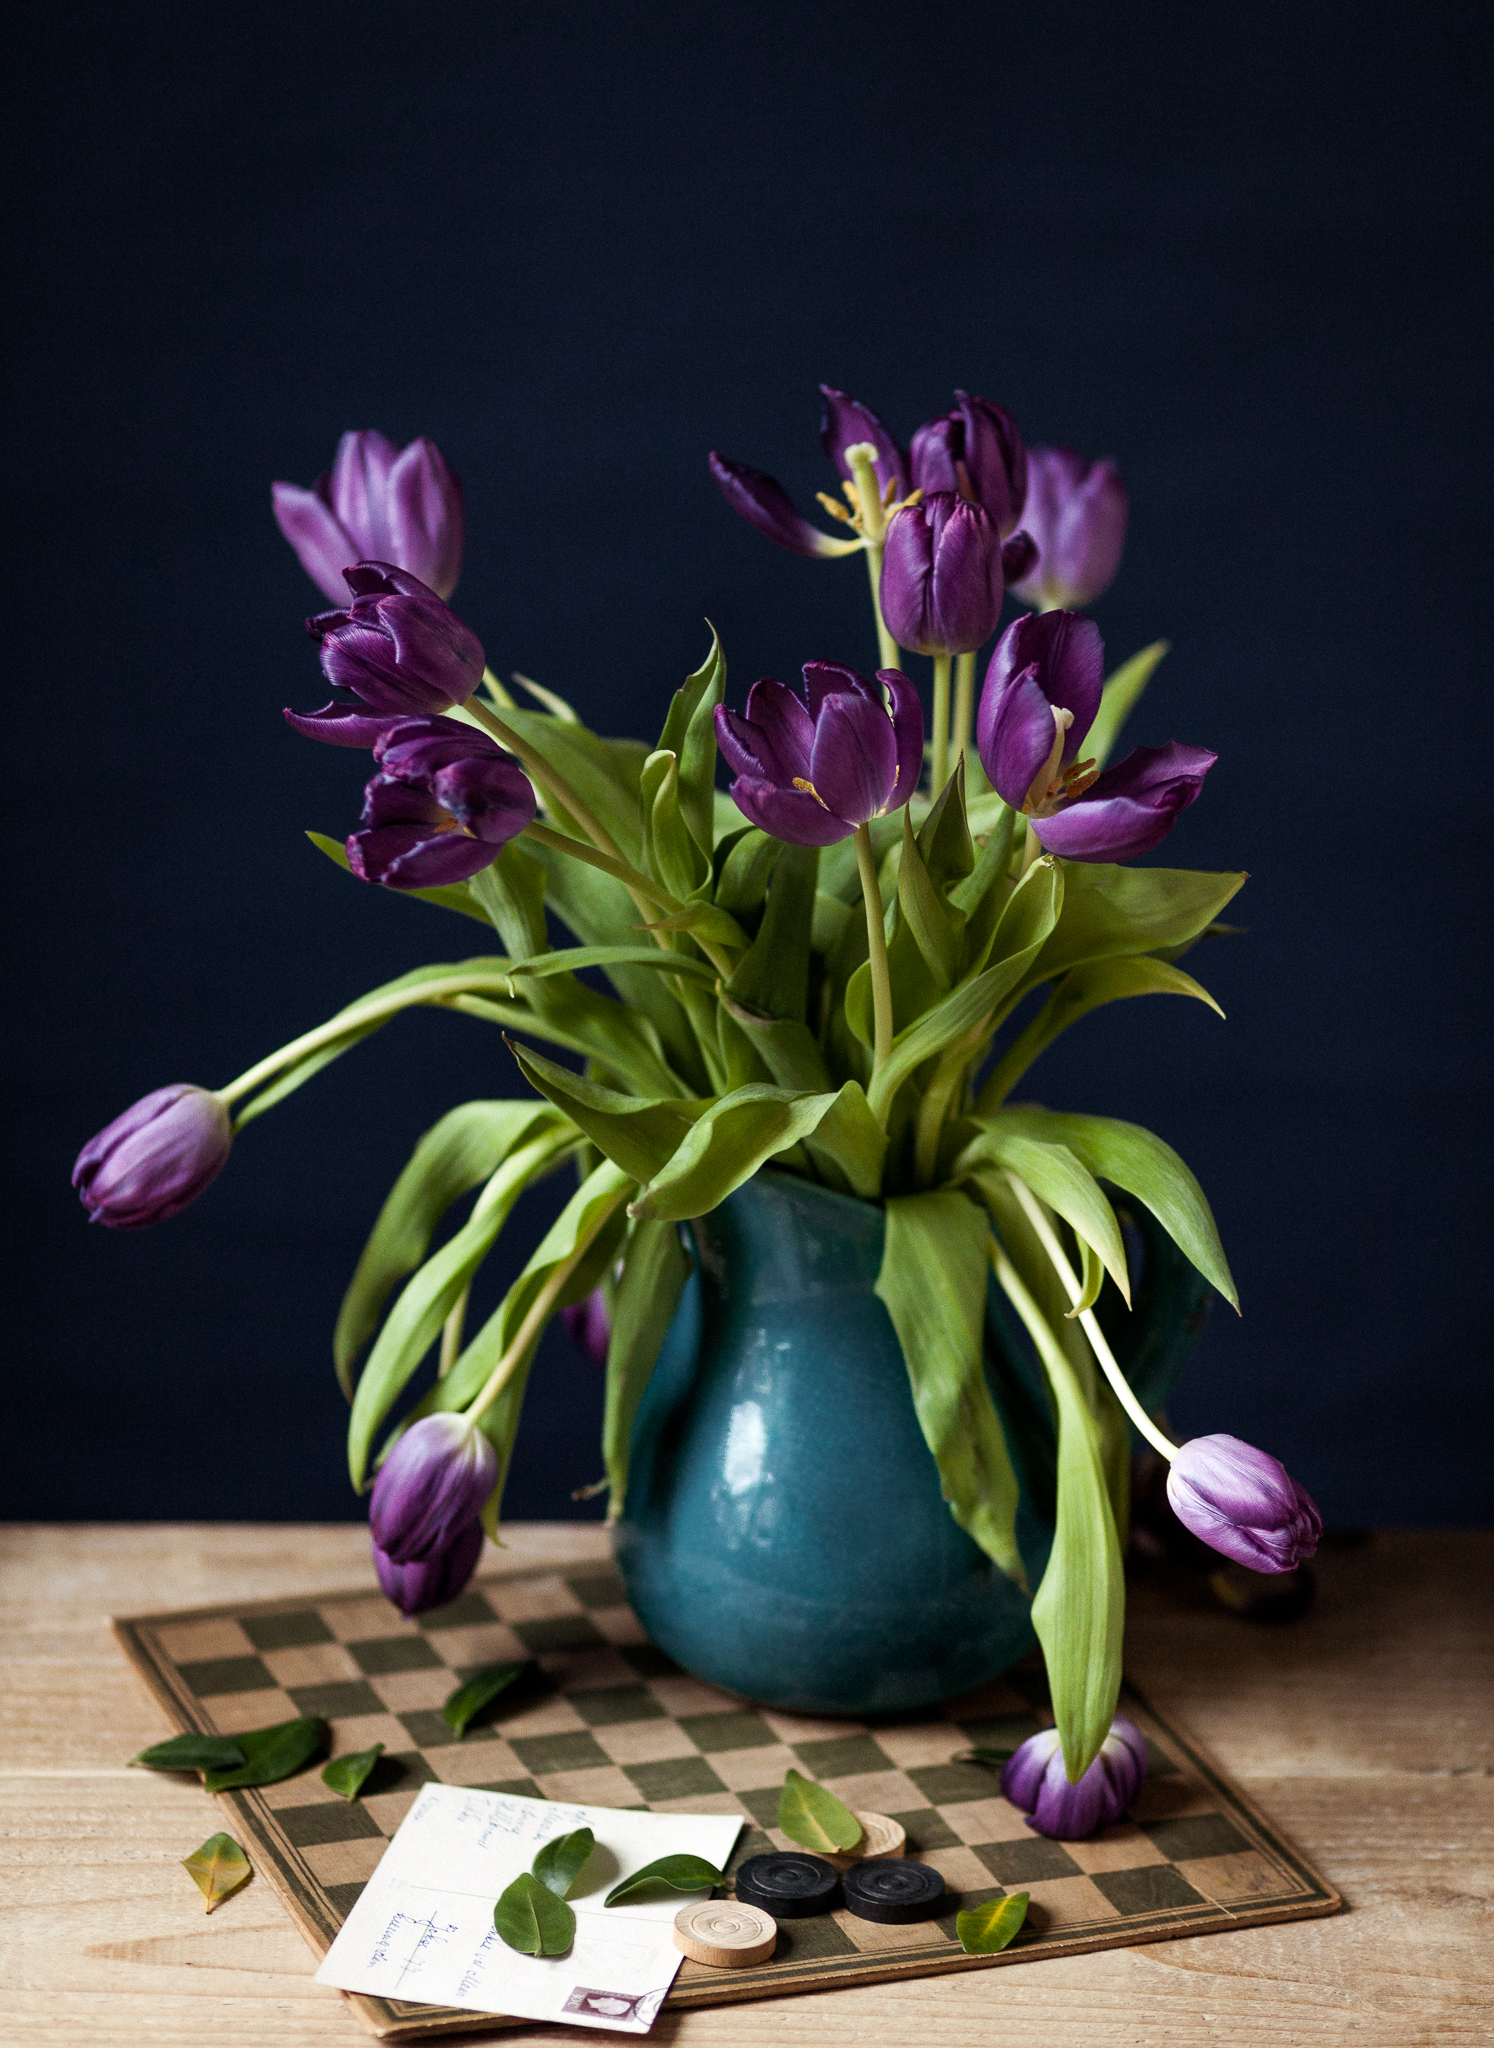 Still-life with tulips